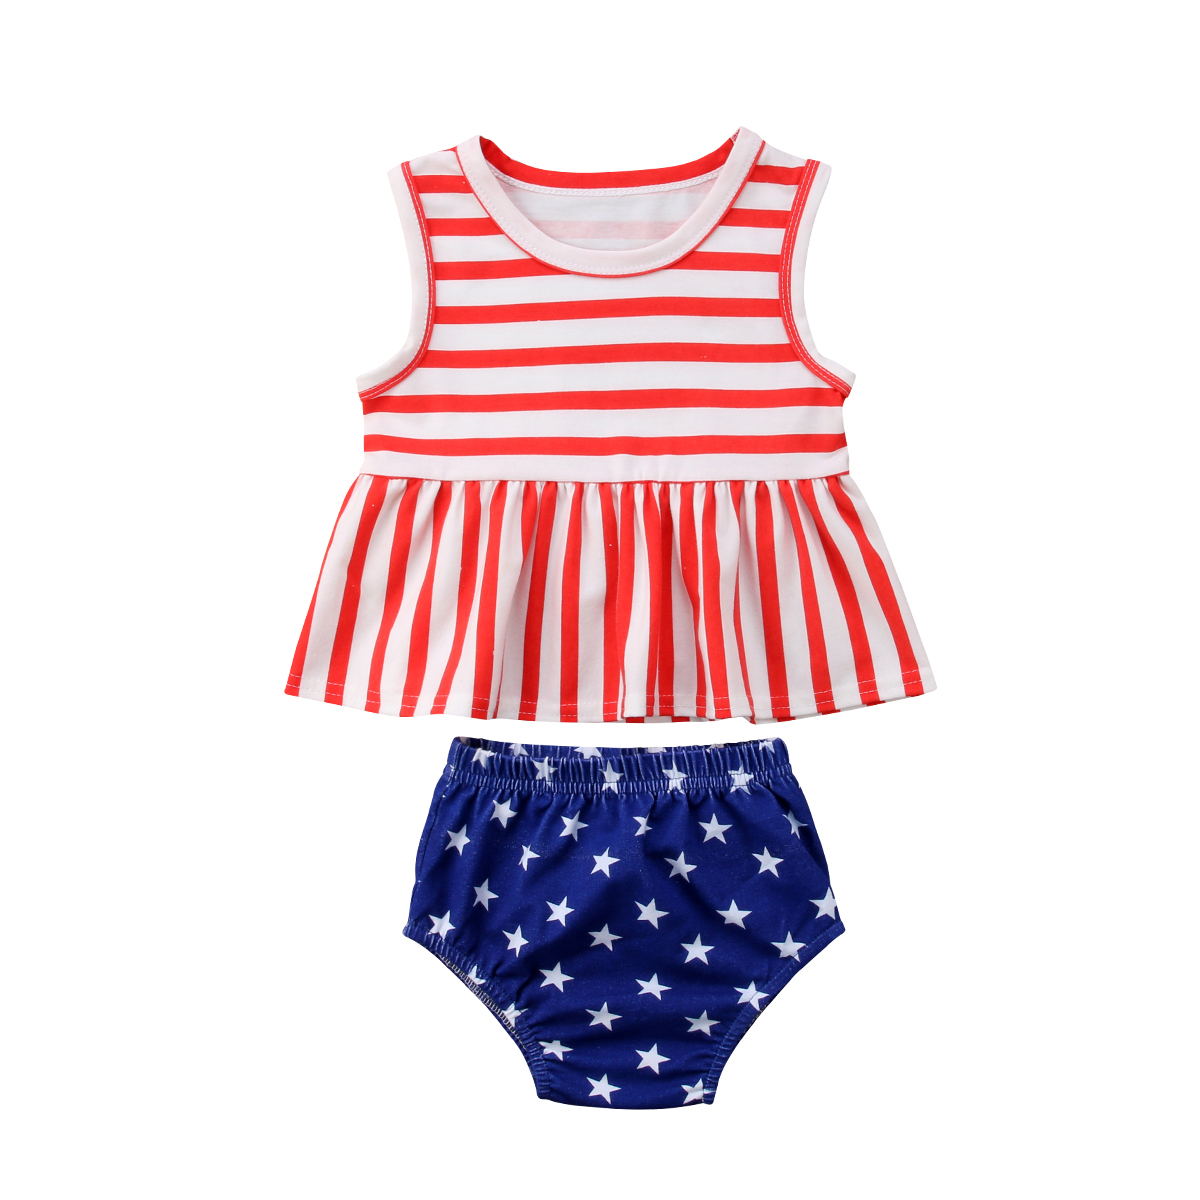 2Pcs Girls Suits Baby Kids Girls Vest Striped Tops Dress Stars Pants Shorts Summer Outfits Clothes Sets